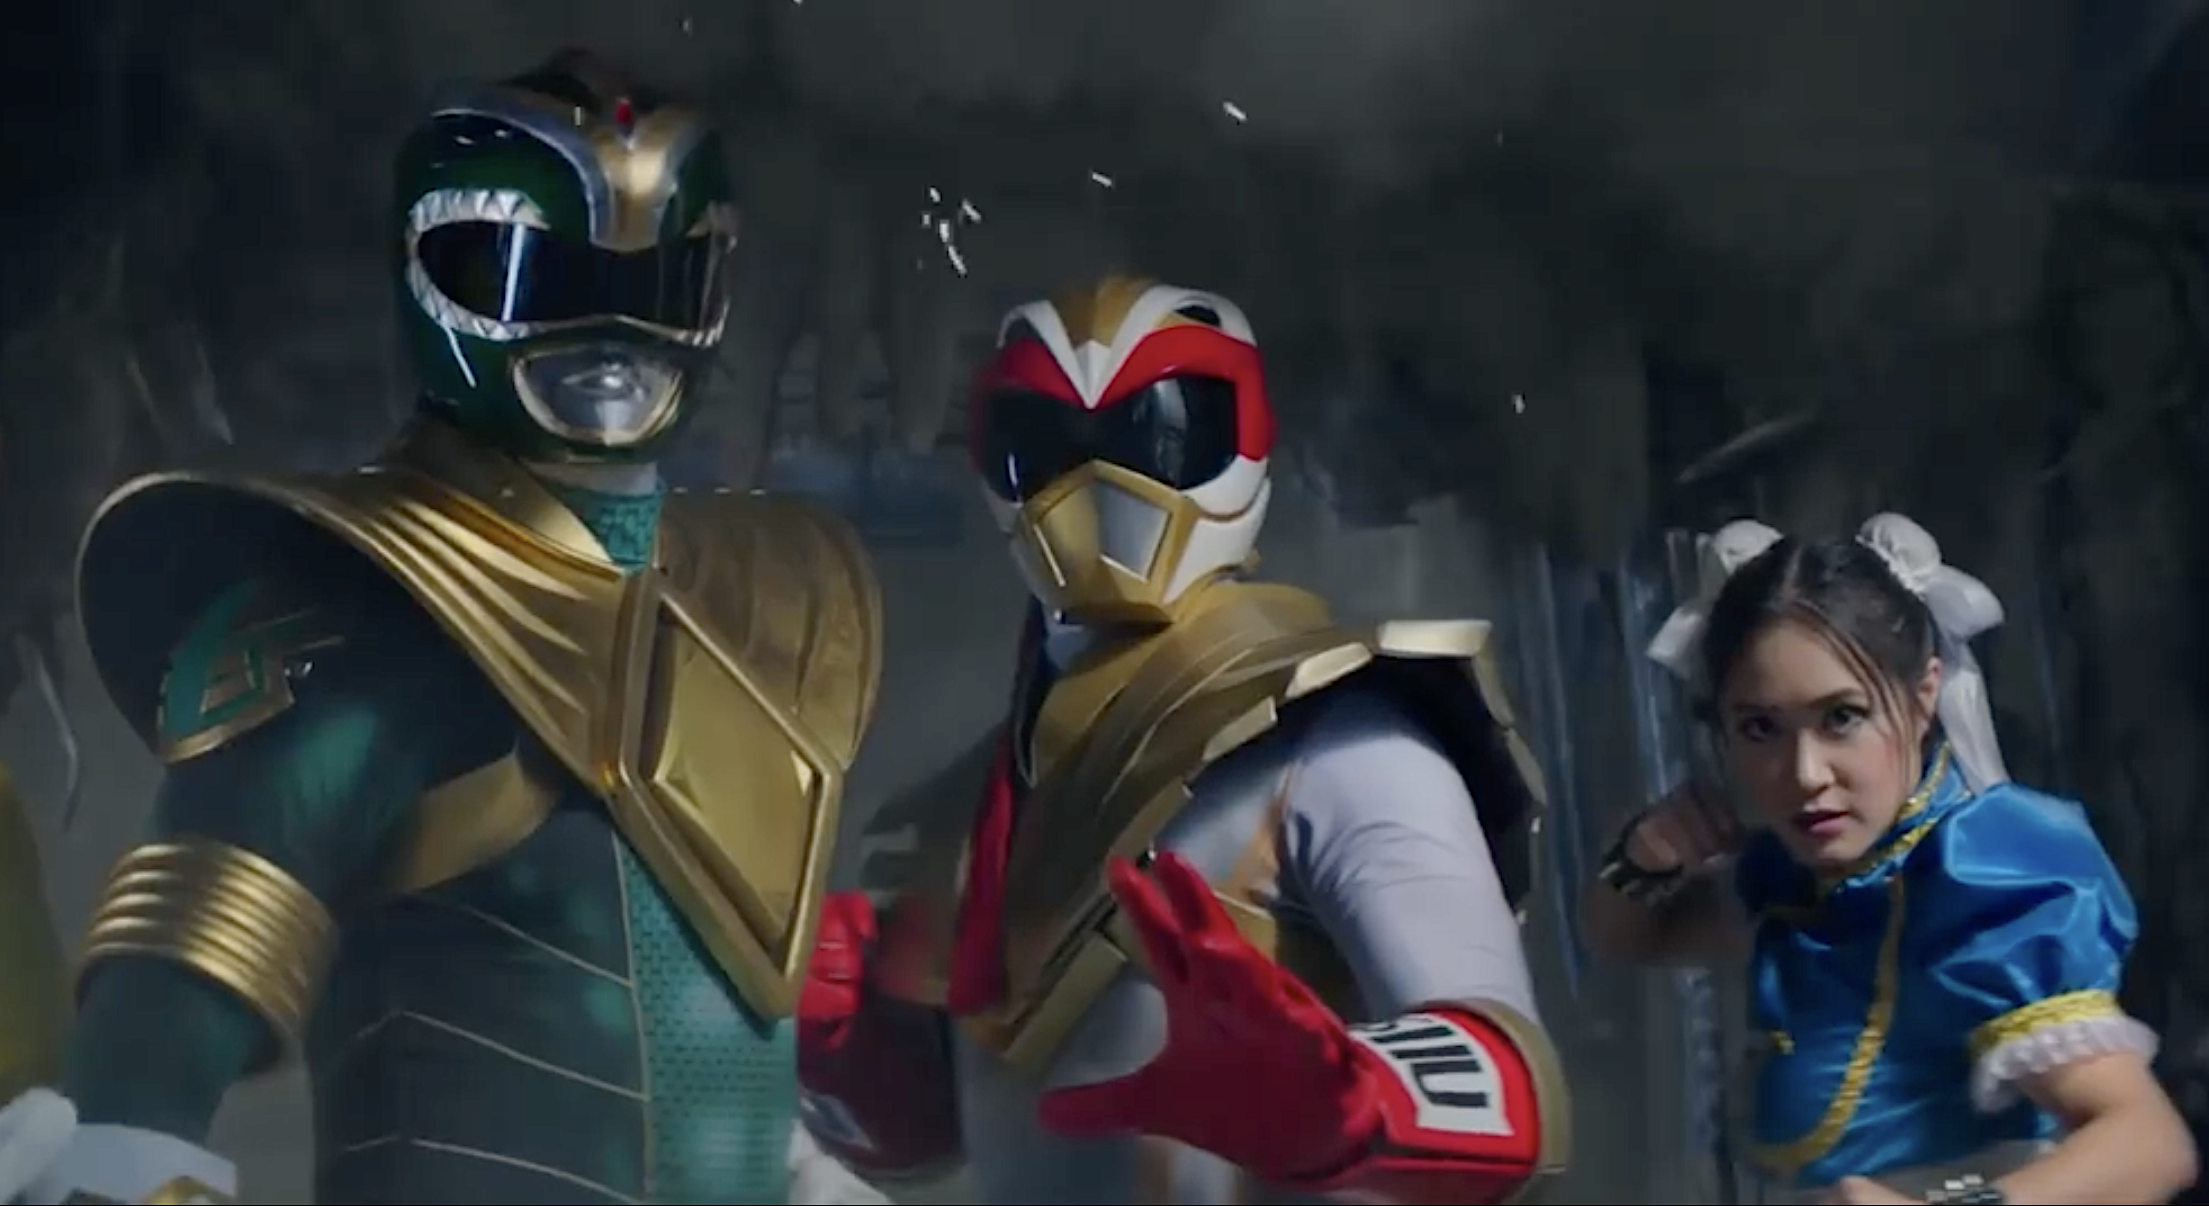 Ryu From Street Fighter Becomes A Power Ranger In Awesome Mini Movie For Power Rangers Legacy War